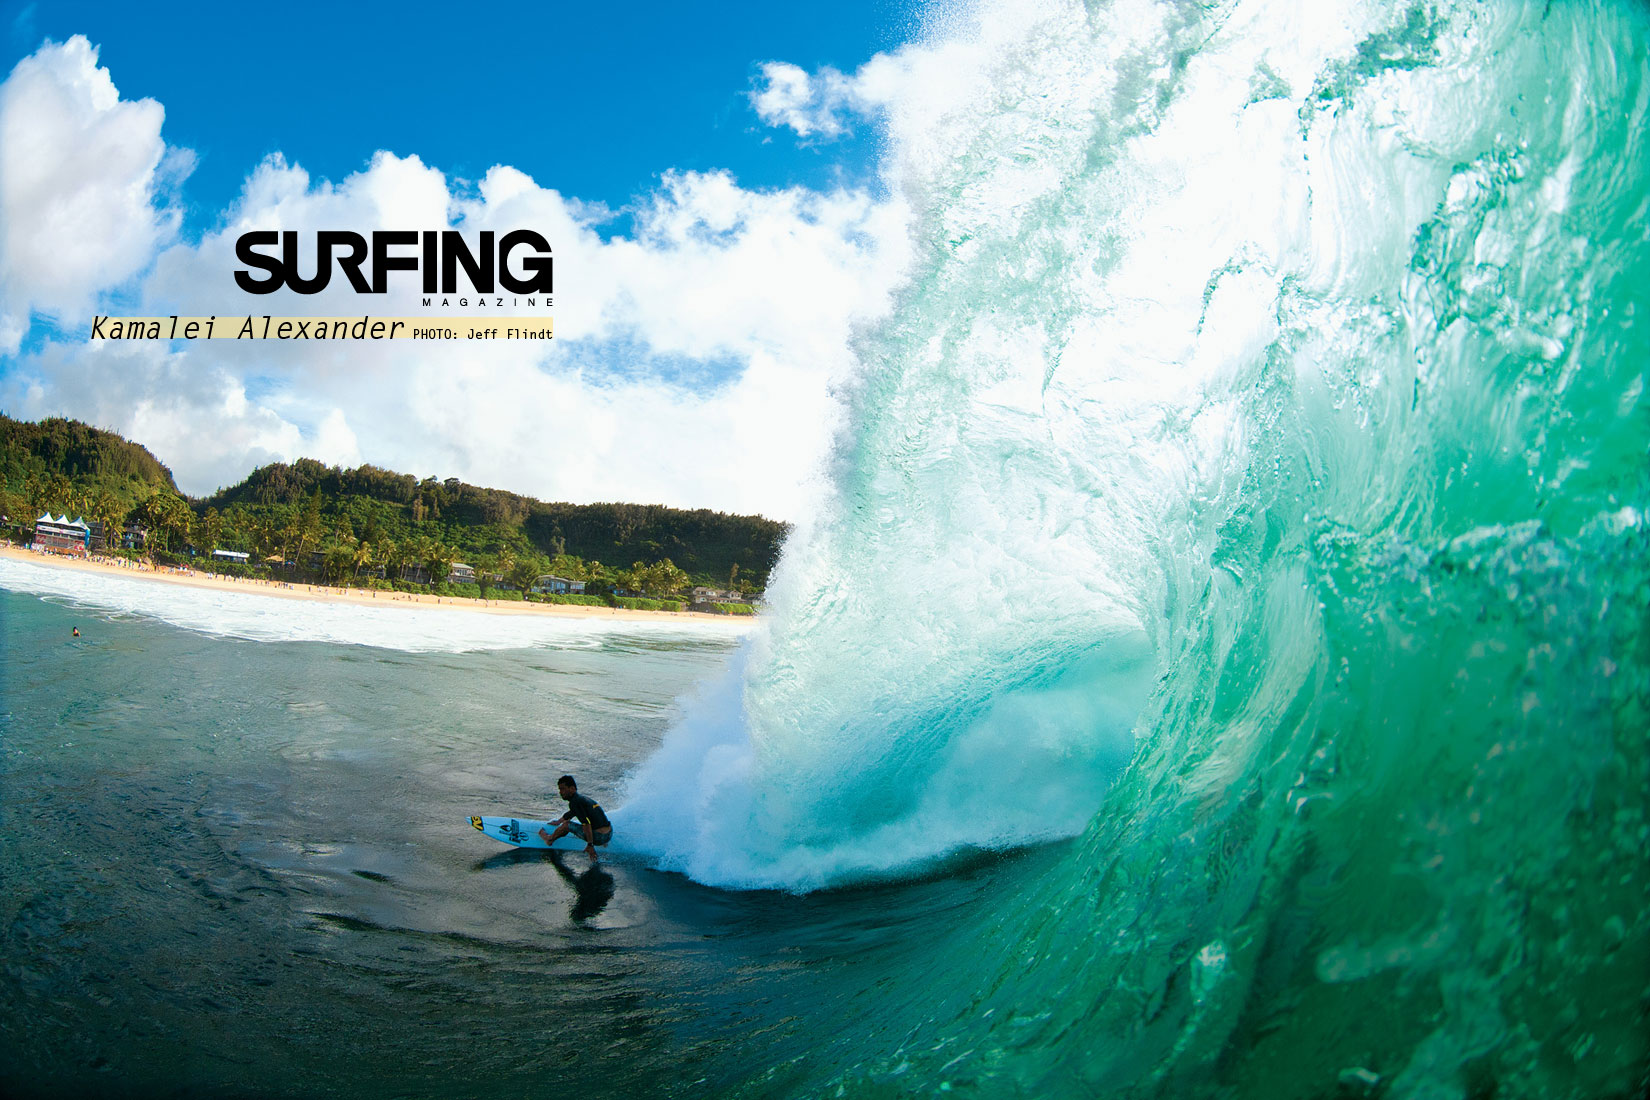 Hd Wallpapers Hd Backgrounds: HD Surf Wallpaper